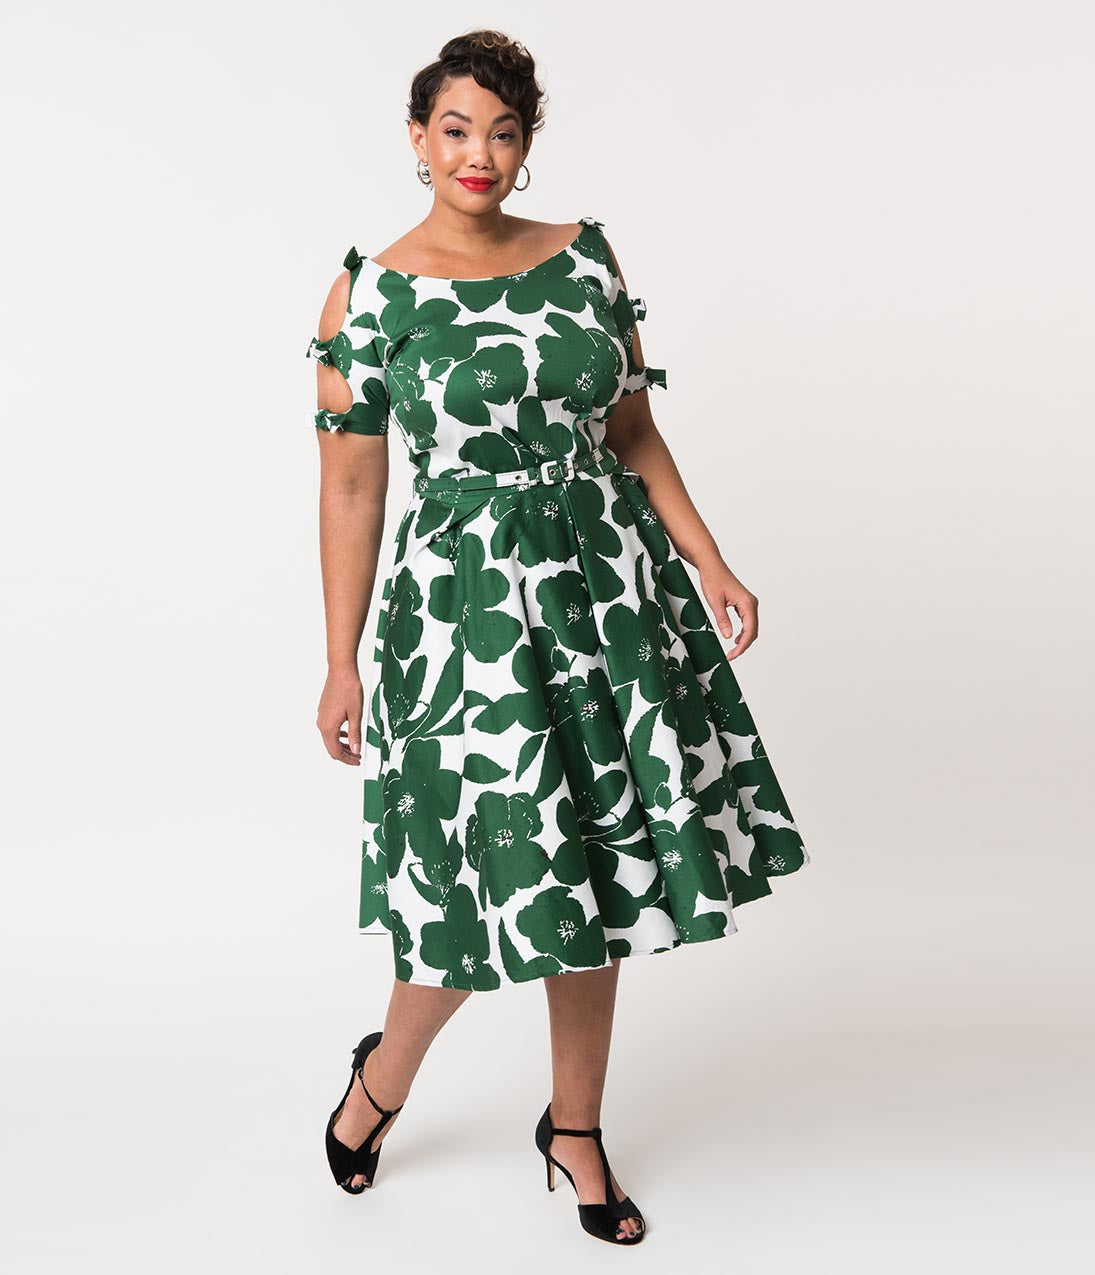 1950s Dresses, 50s Dresses | 1950s Style Dresses Unique Vintage Plus Size 1950S White  Green Floral Bow Sleeve Selma Swing Dress $98.00 AT vintagedancer.com